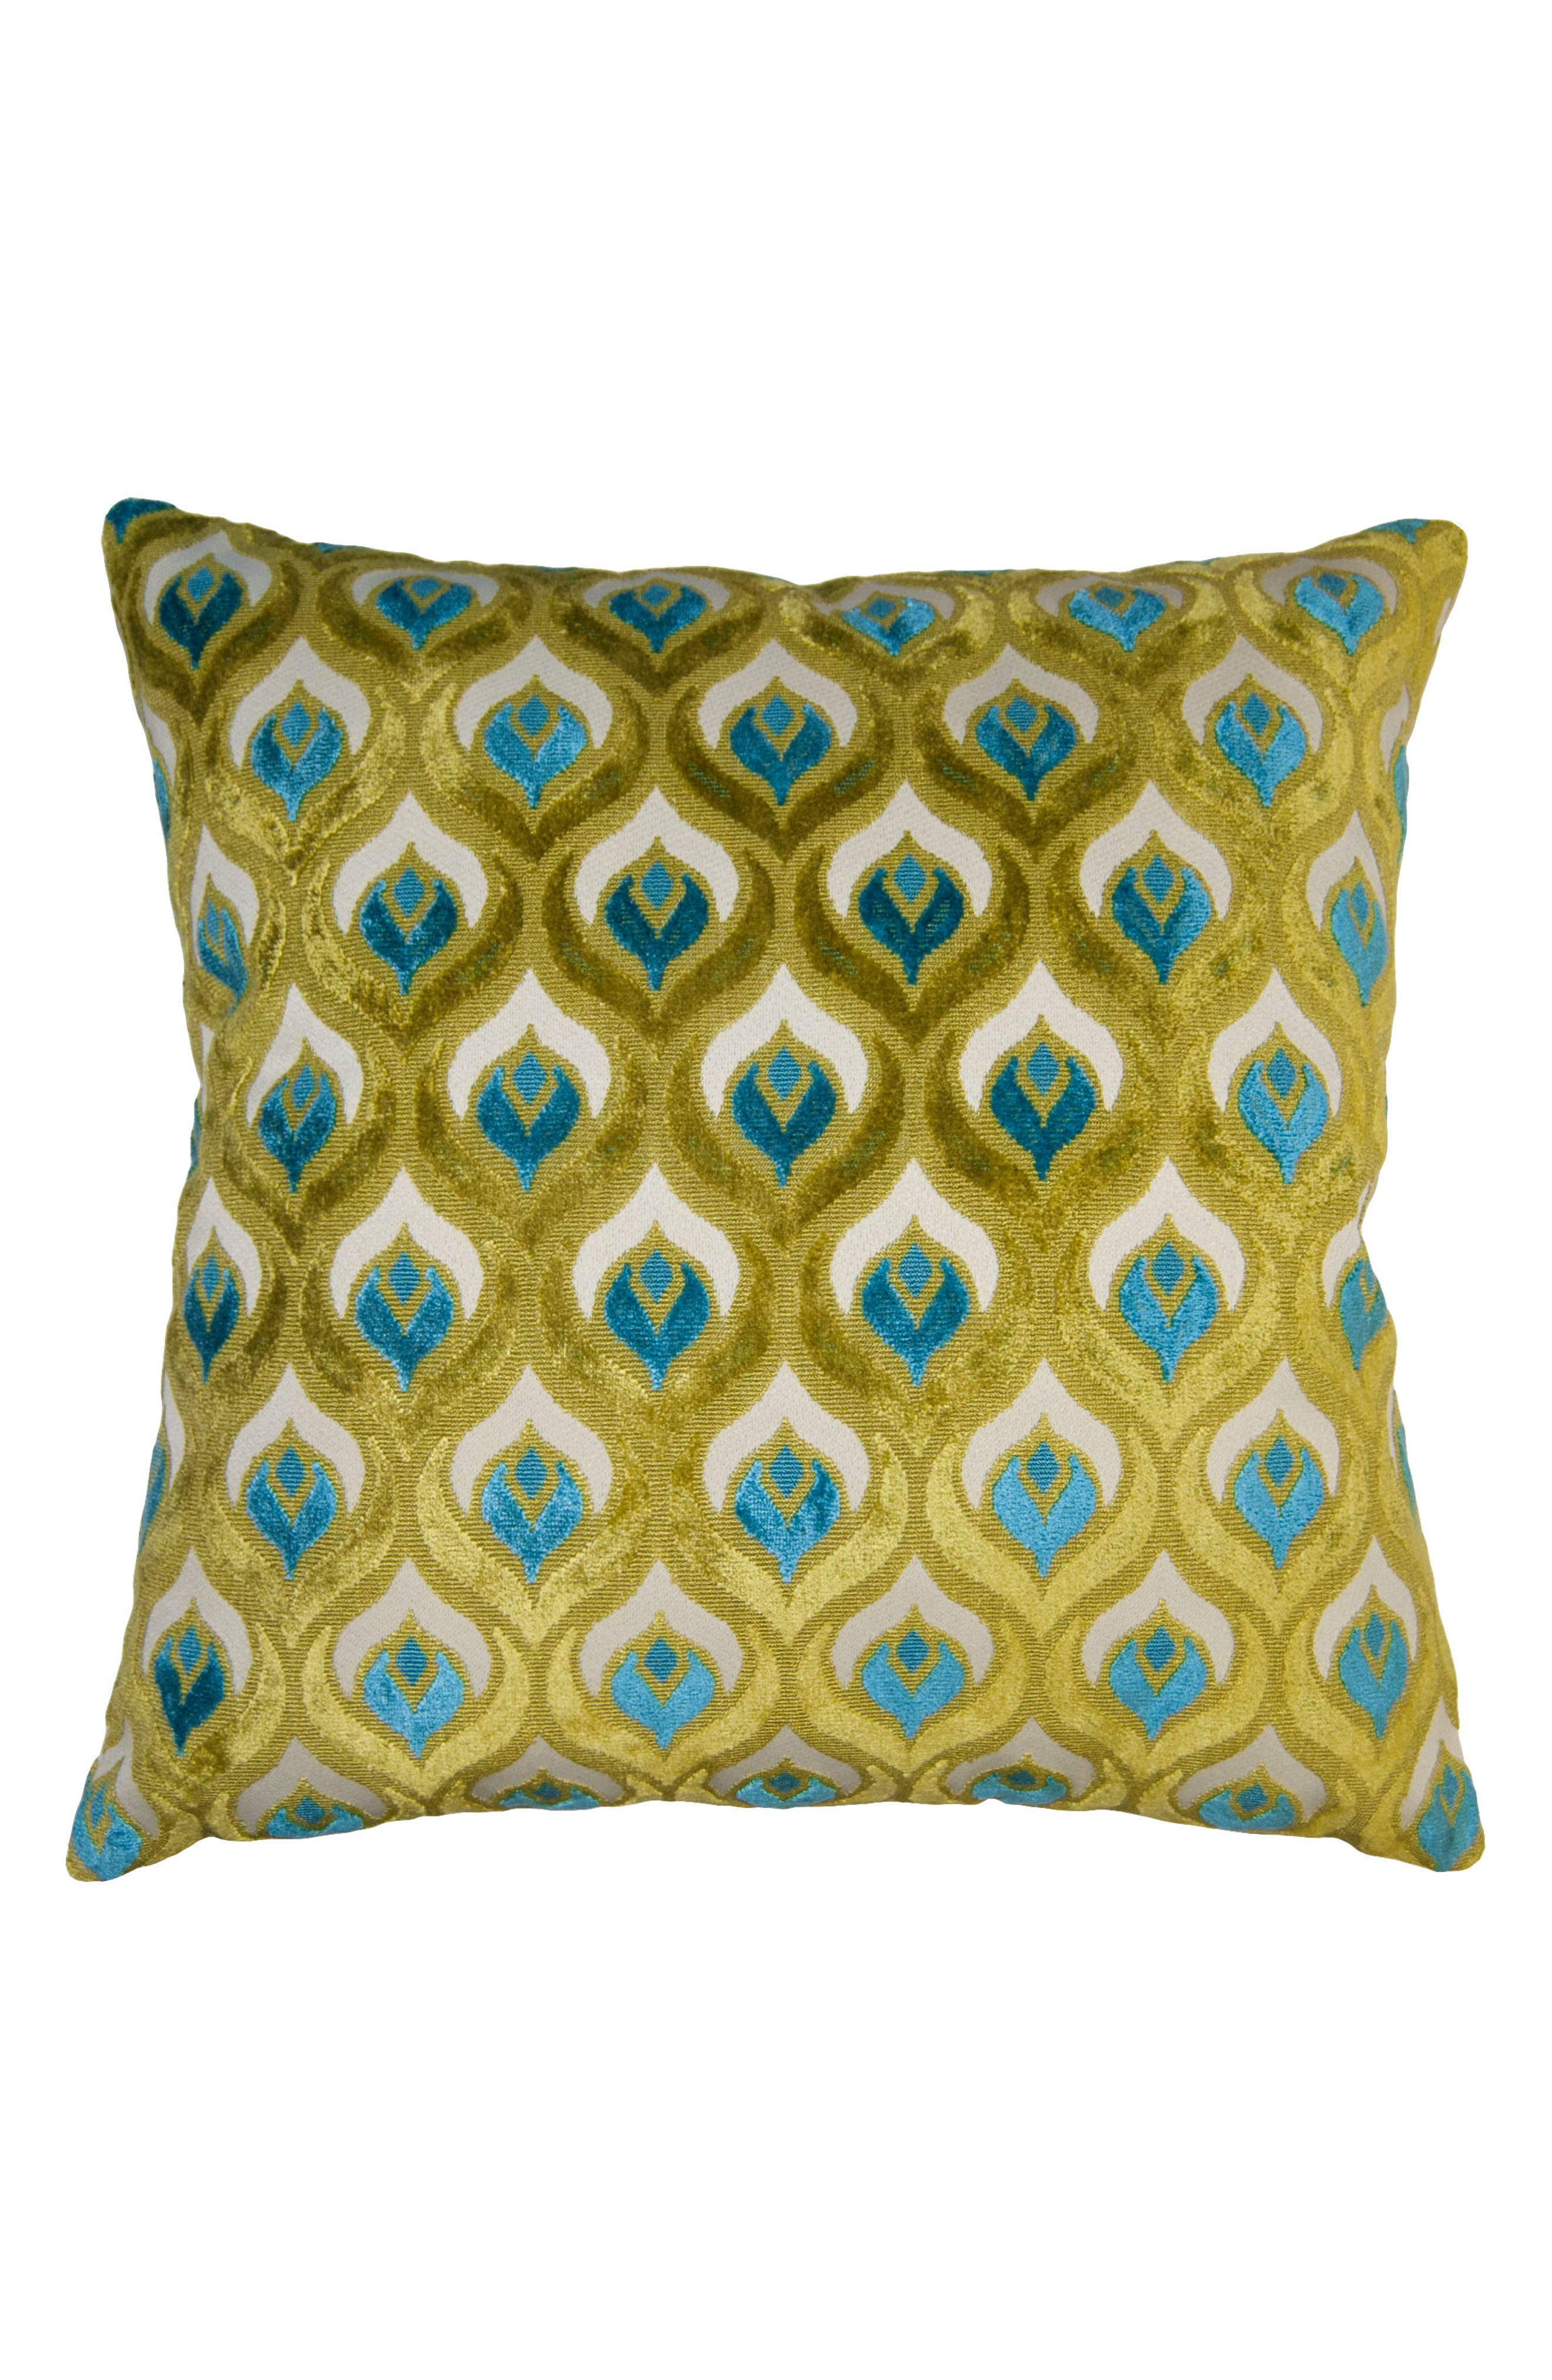 Square Feathers Riviera Ornate Accent Pillow